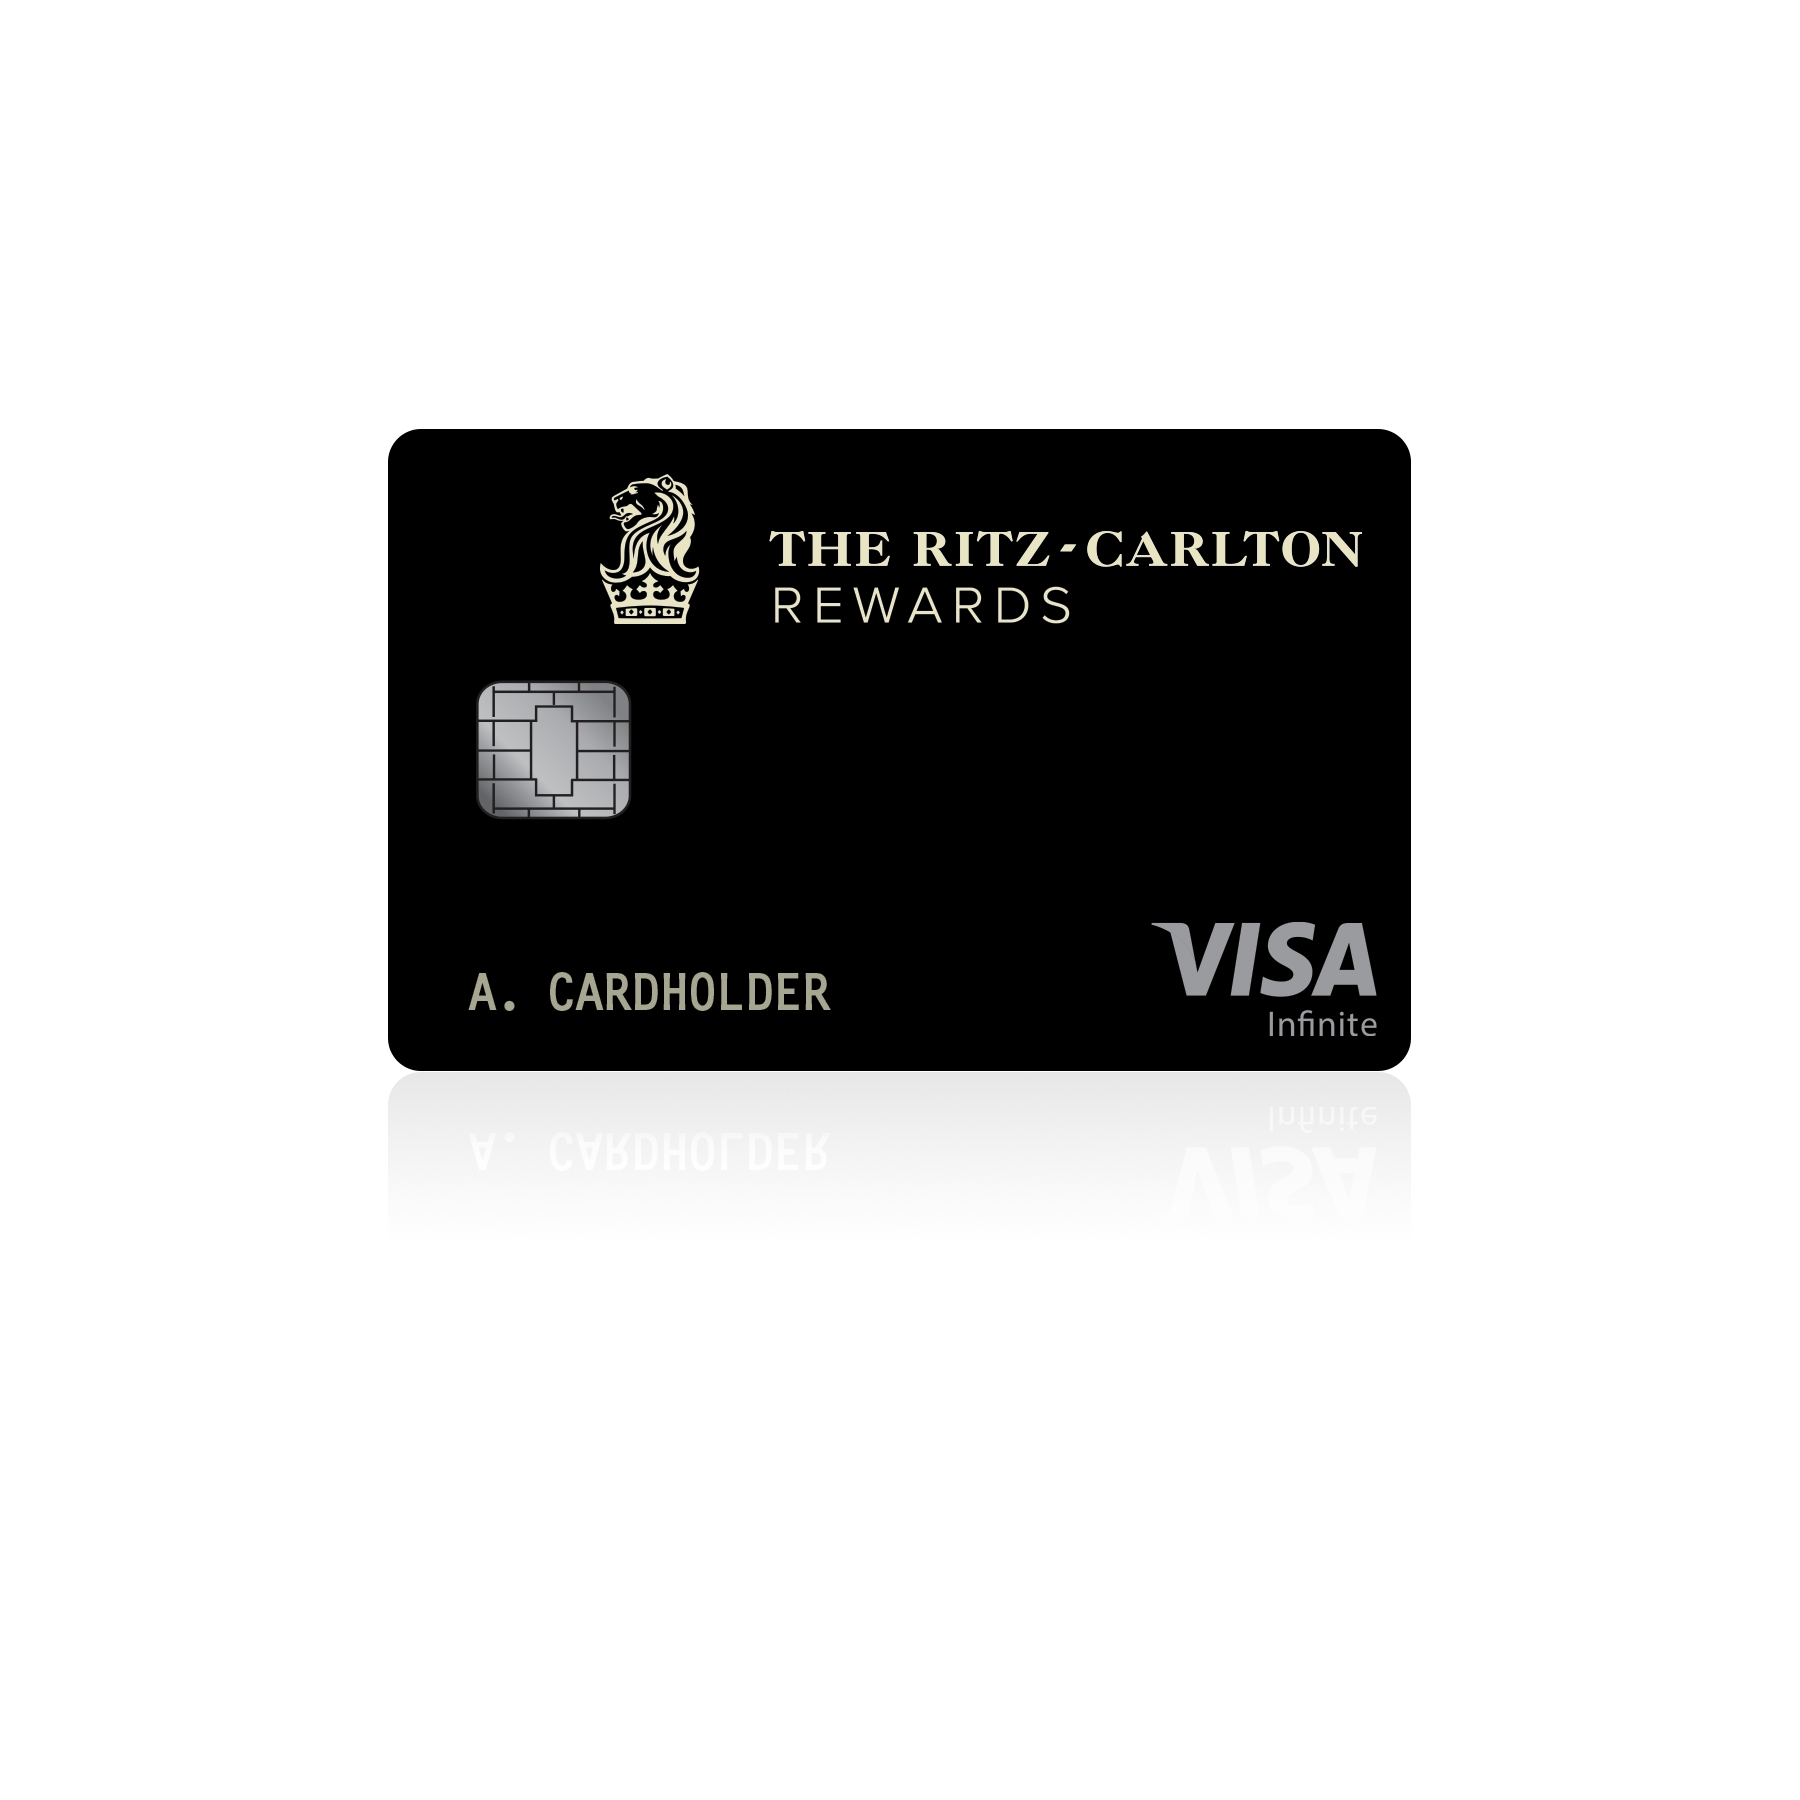 Cardmembers Receive Access to Even More Extraordinary Experiences ...